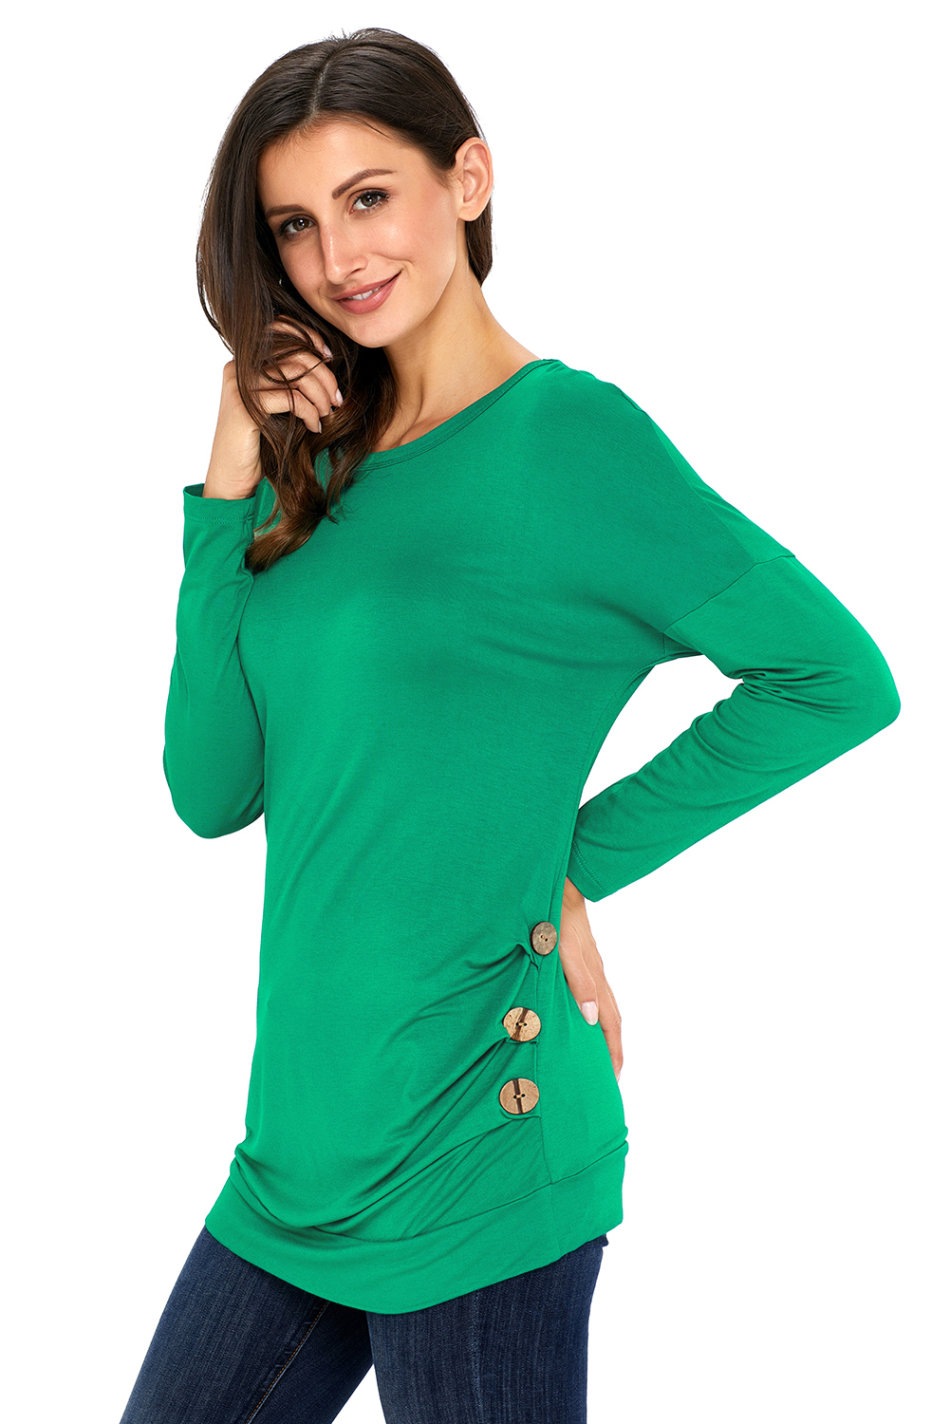 FREE SHIPPING AVAILABLE! Shop specialtysports.ga and save on Tunic Tops Tops.